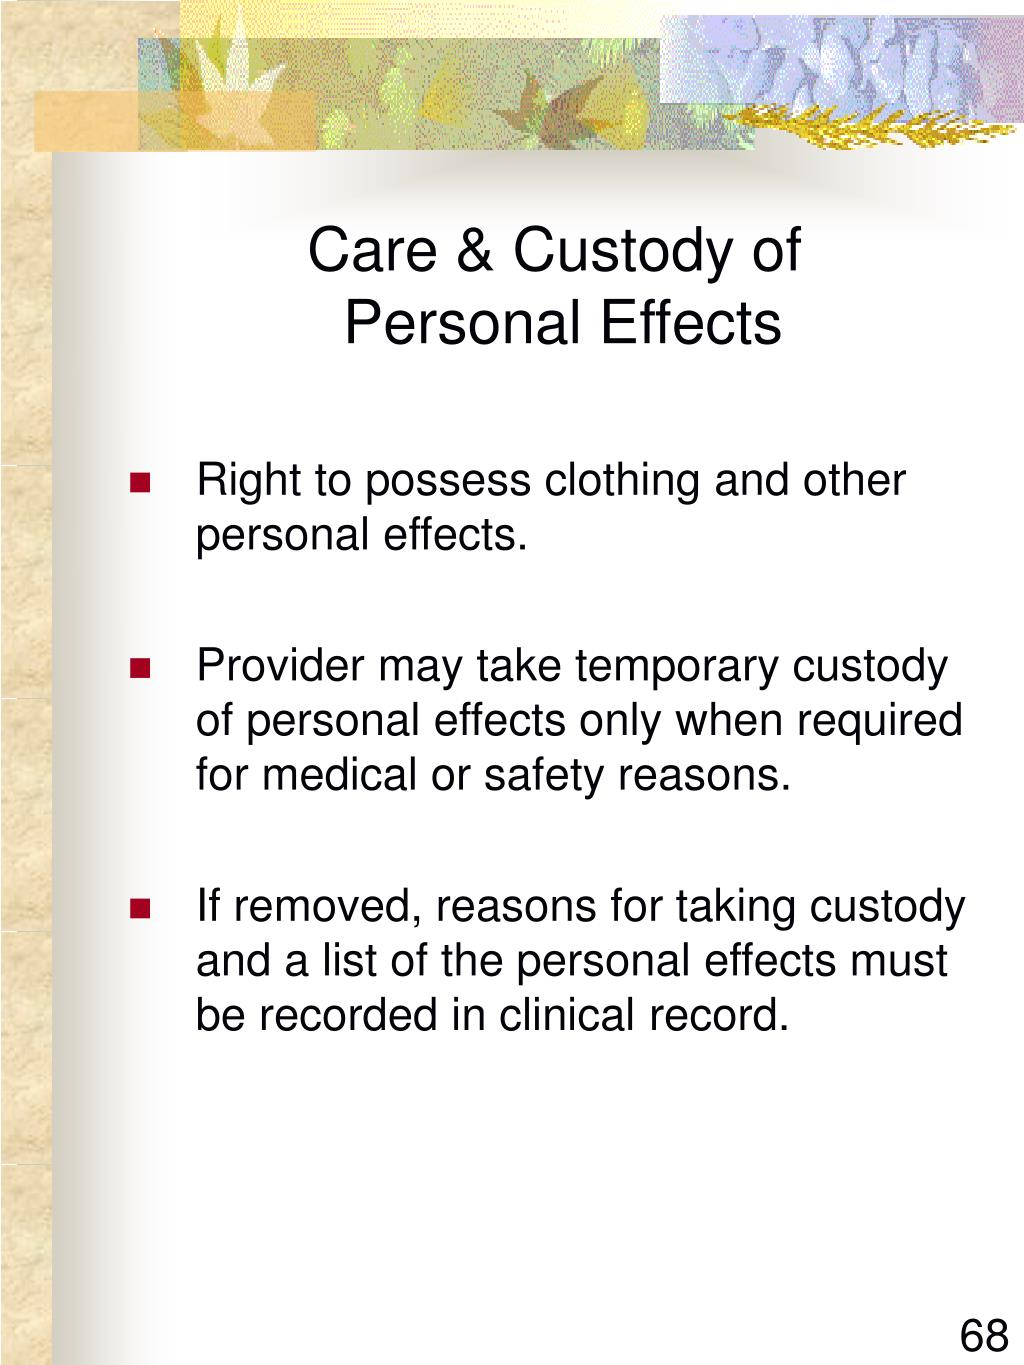 Care & Custody of